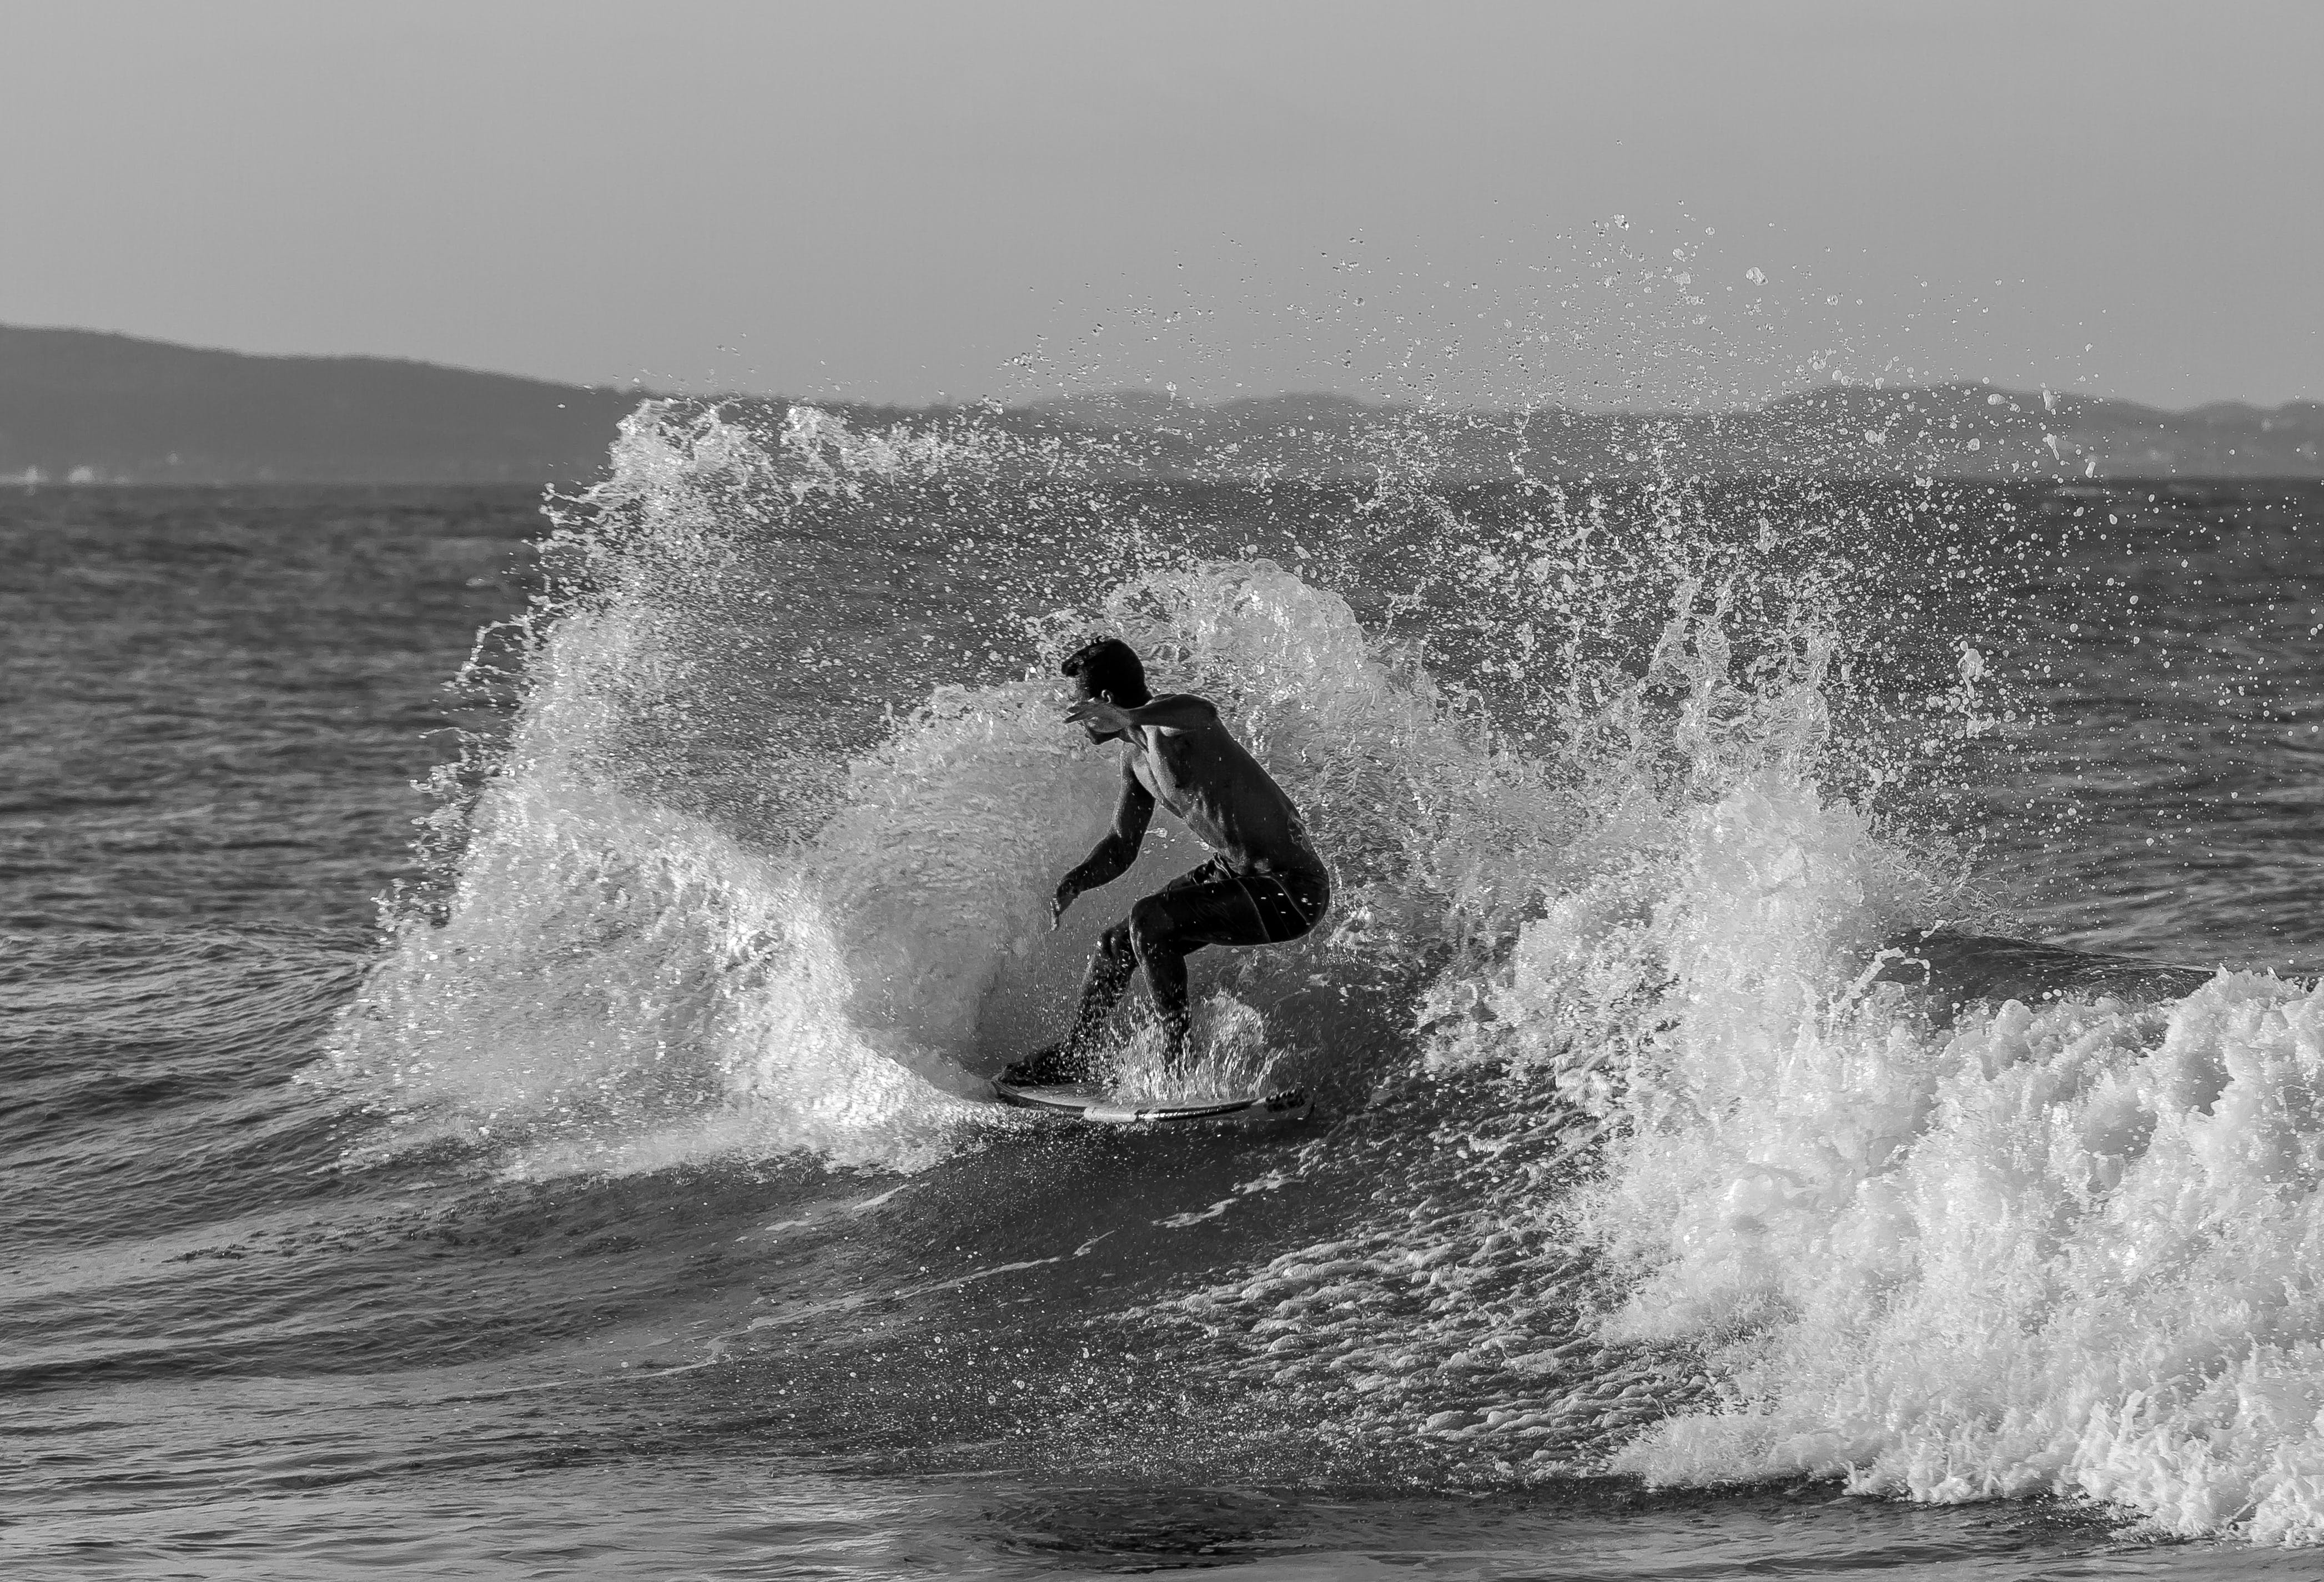 Grayscale Photo of Man Surfing